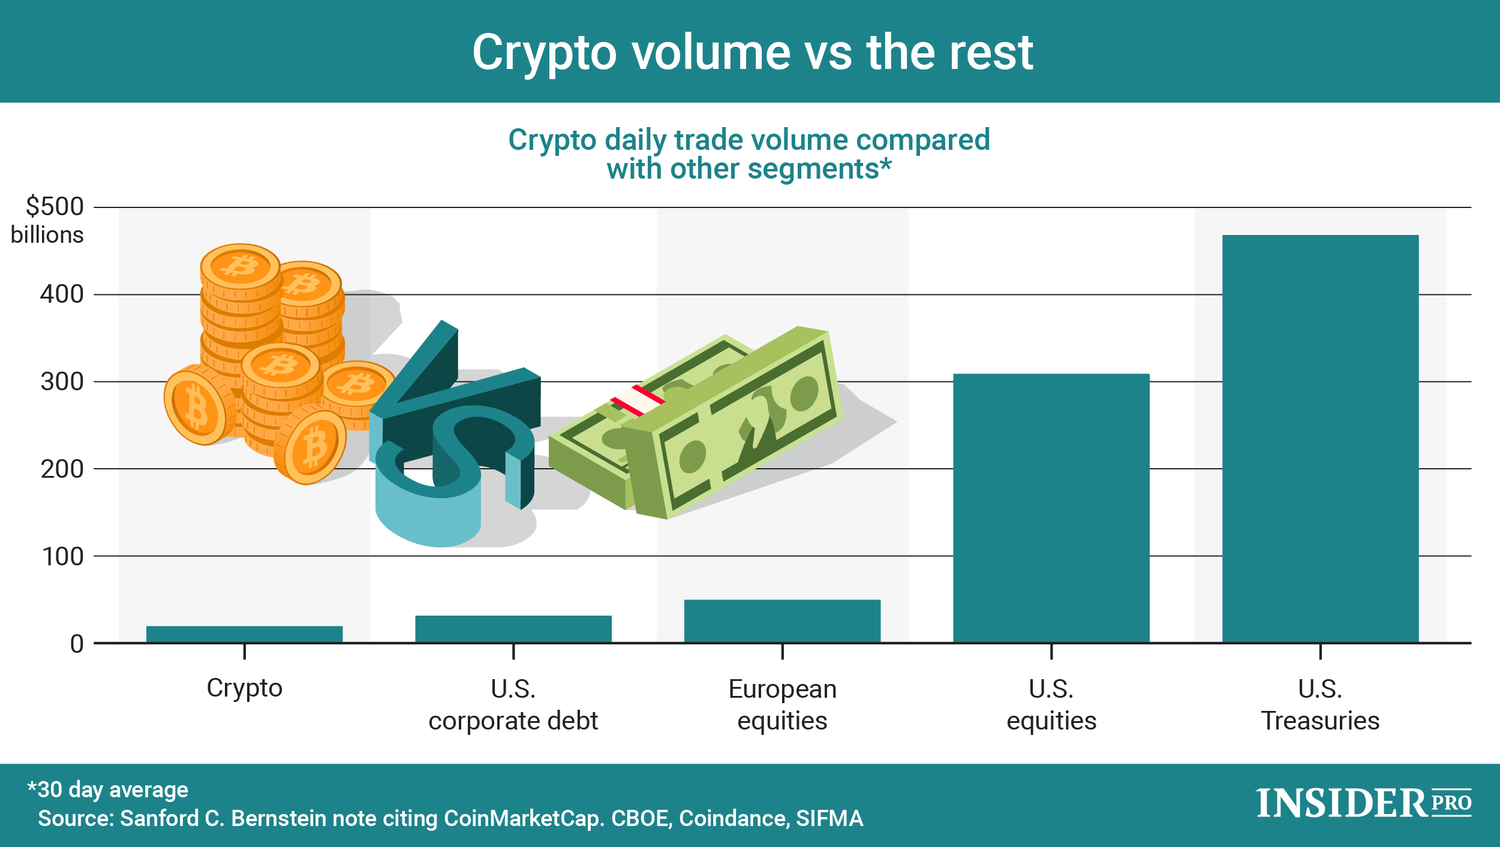 daily trading volume of cryptocurrencies